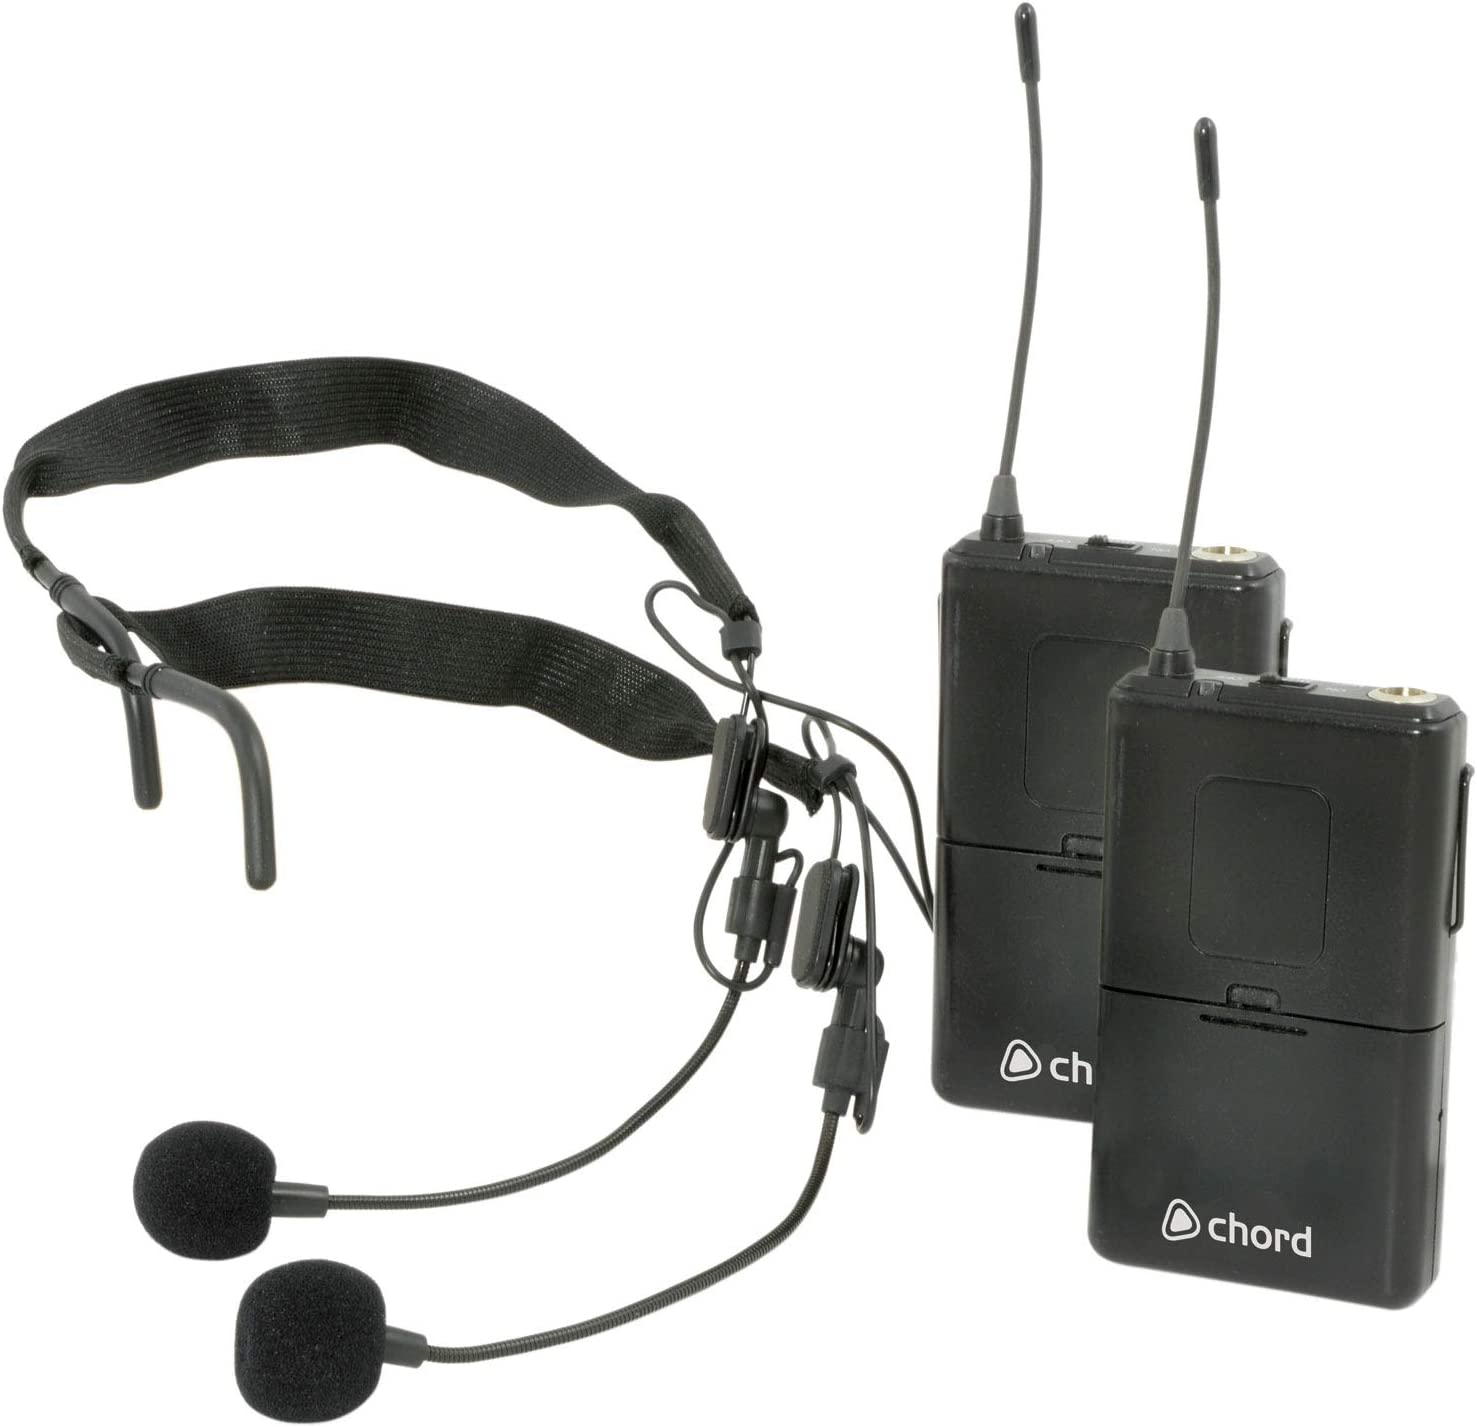 UHF 863.8MHz Wireless Microphone System Neckband /& Lapel Options 864.8MHz Chord